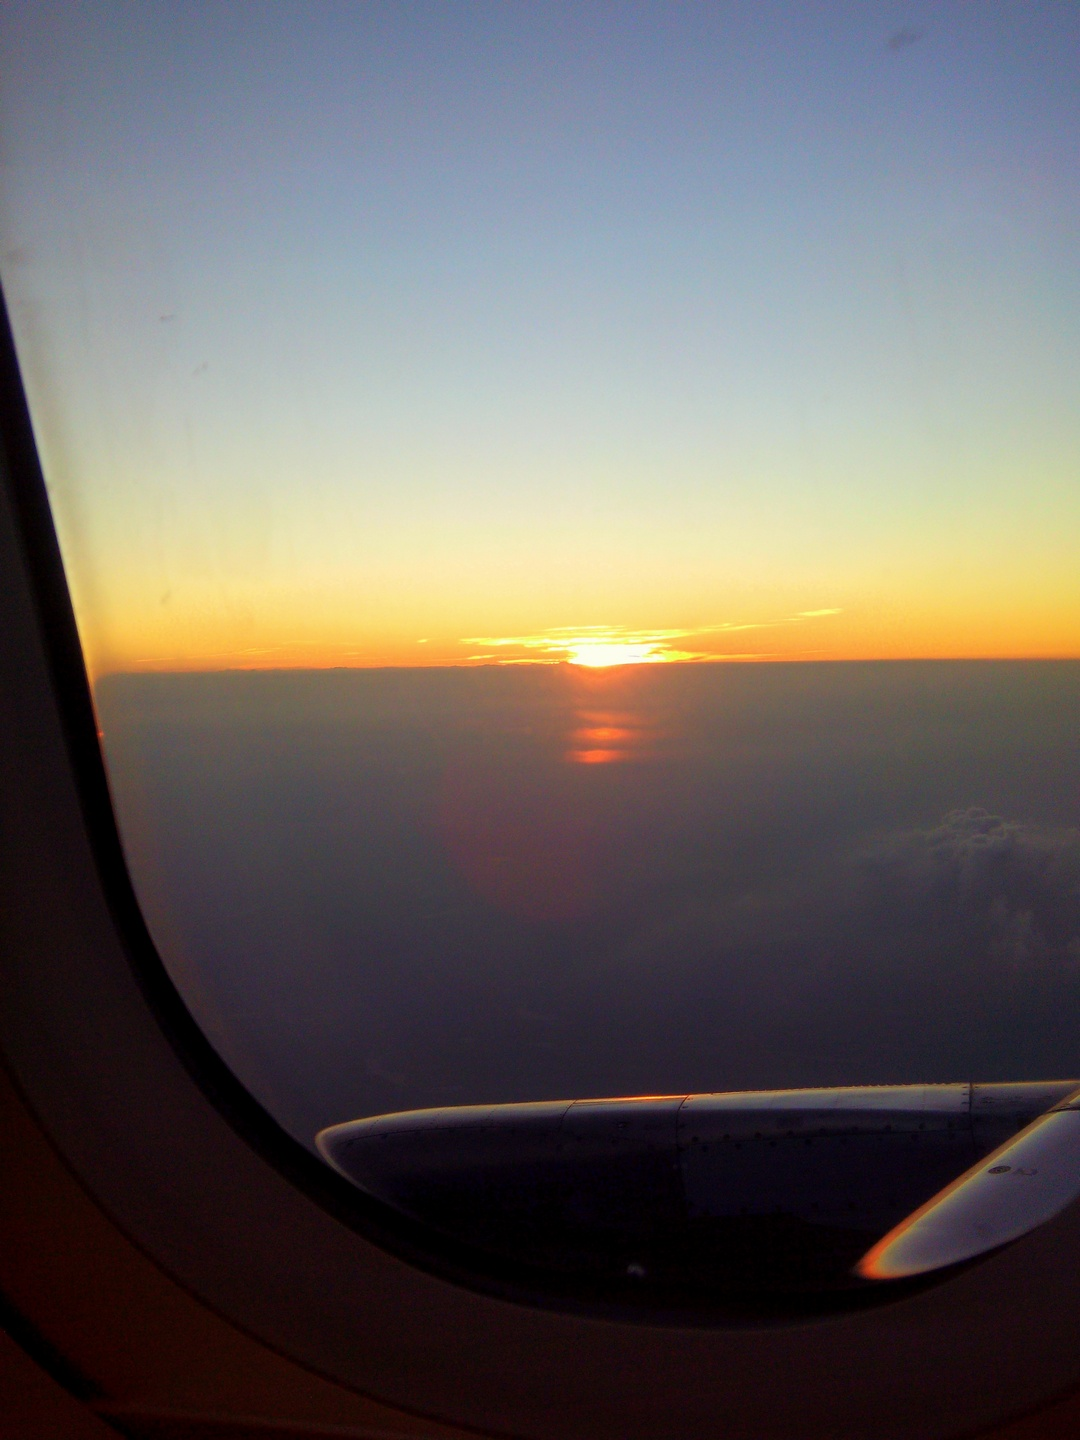 The Lovely Sunset captured on my Air travel to Hyderabad was a feast to my eyes !